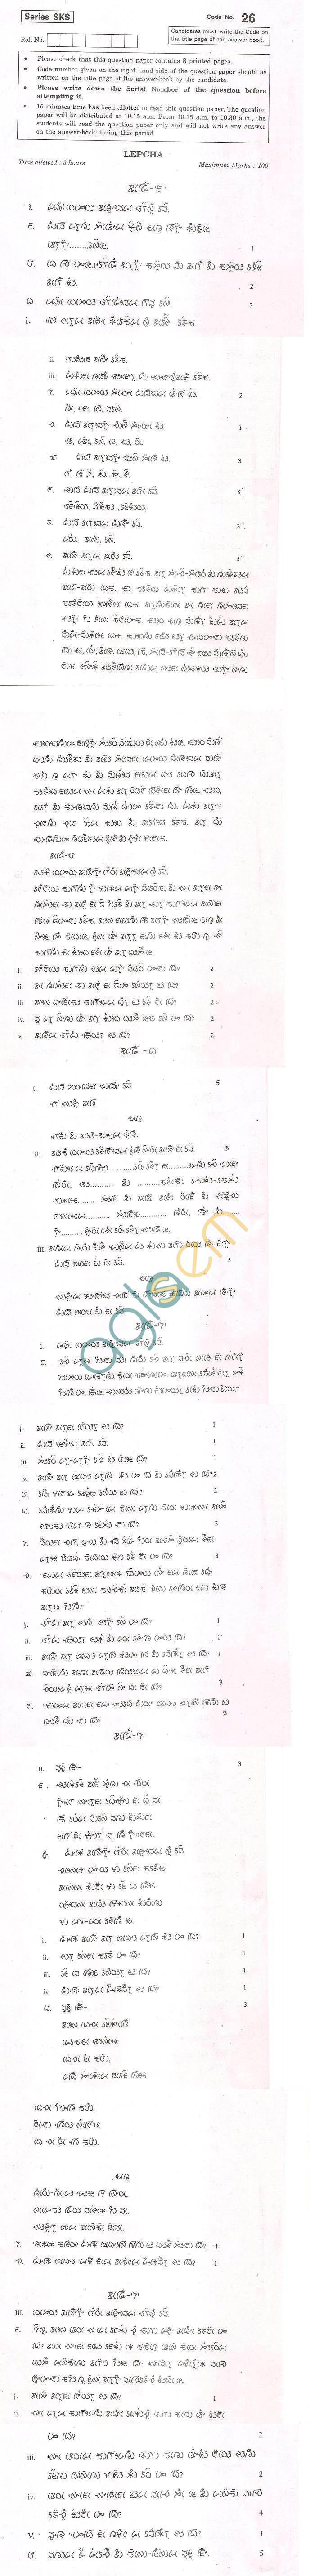 CBSE Board Exam 2013 Class XII Question Paper -Lepcha